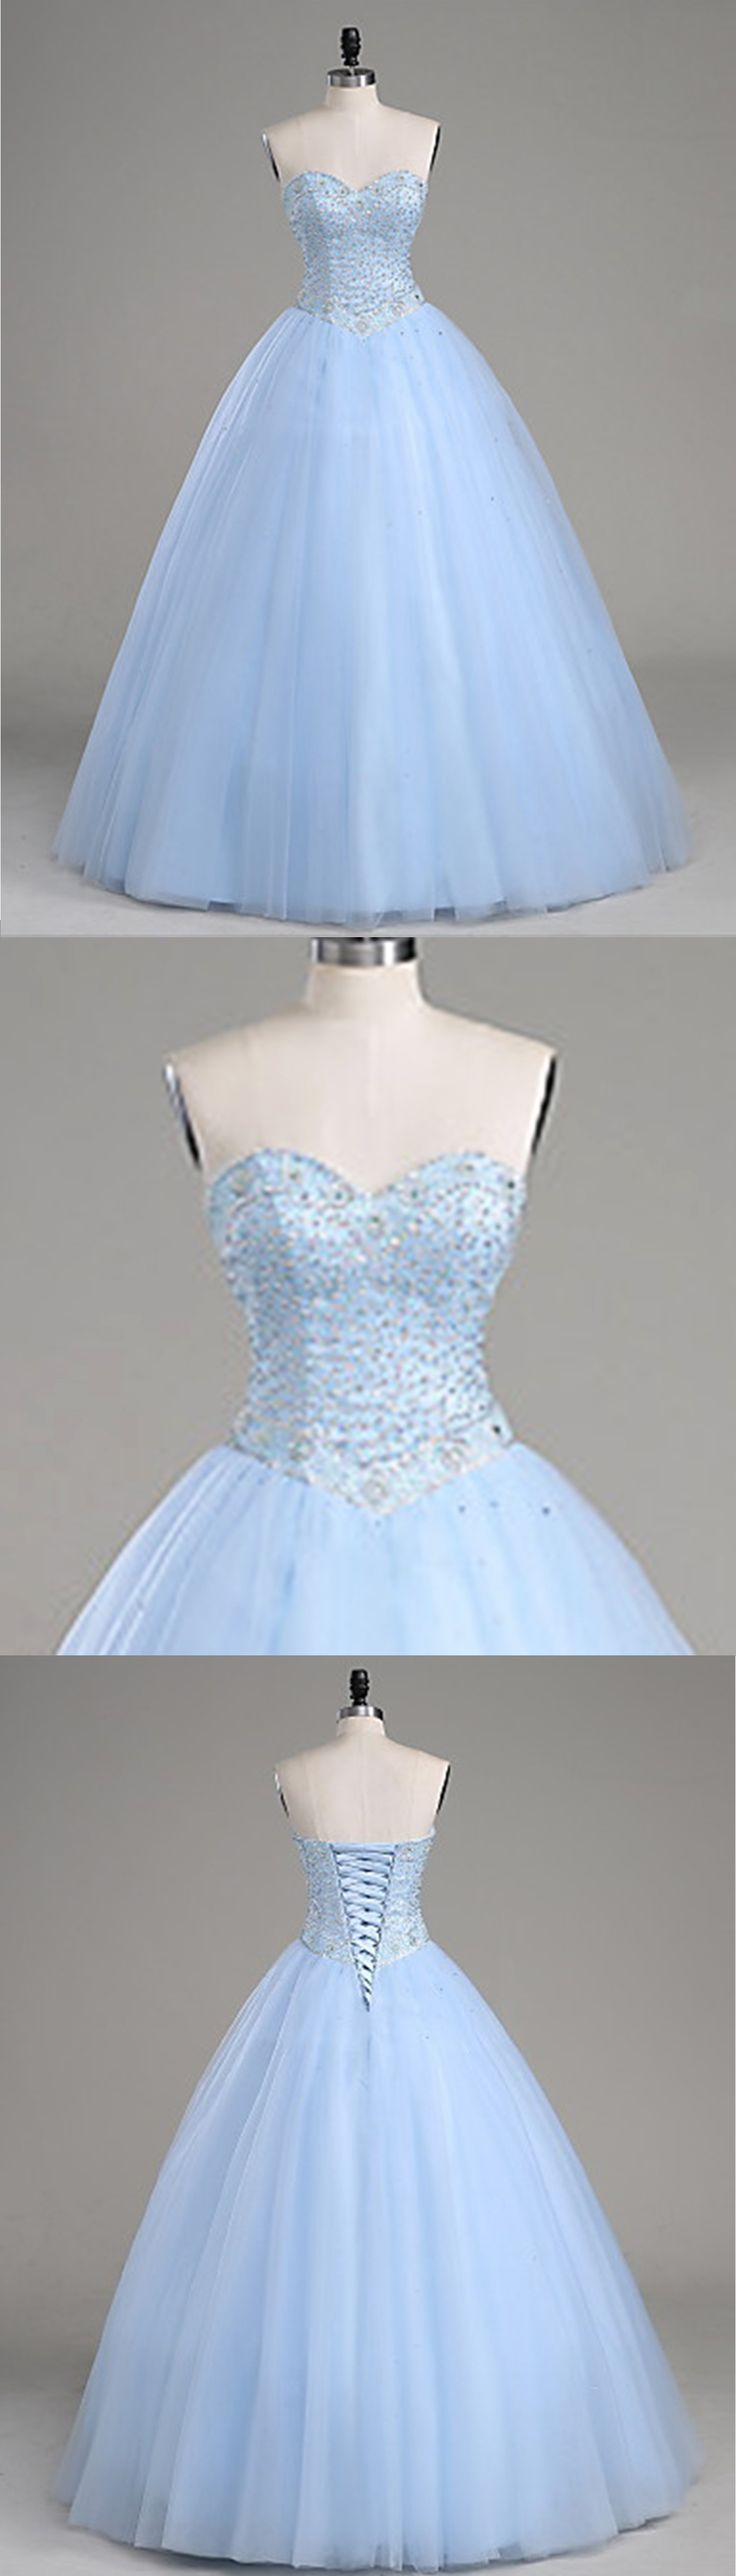 Sweet 16 Dresses | Beaded ice blue tulle prom dress for teens #prom #dress #promdress #promdresses